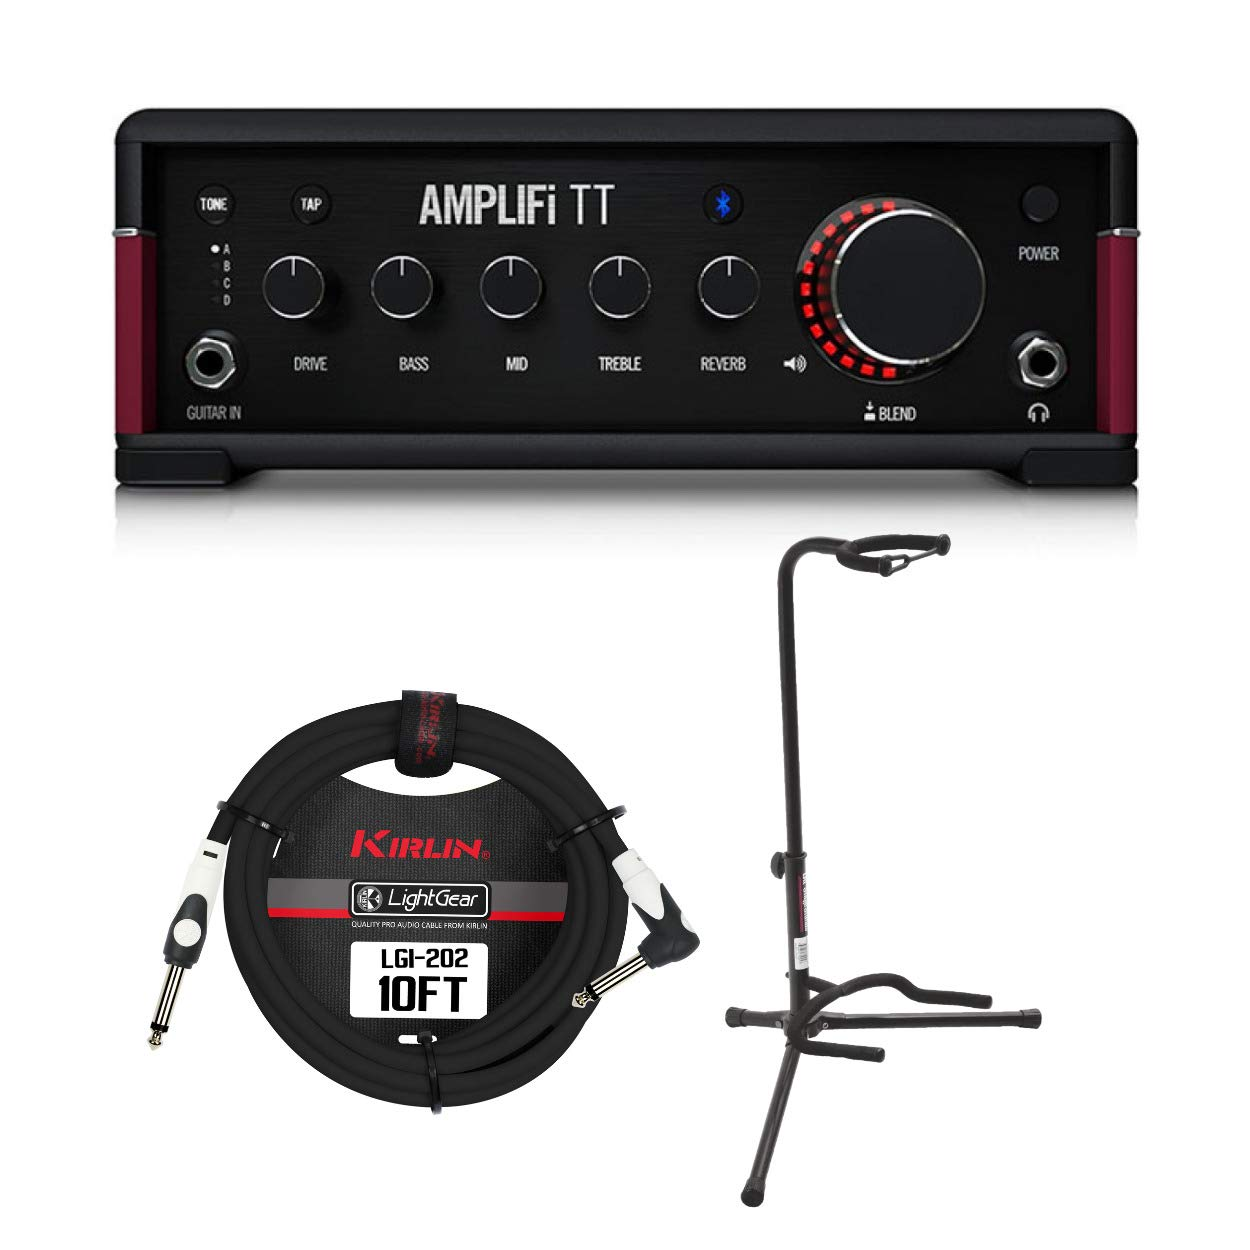 Line 6 AMPLIFi TT Desktop Guitar Effects Processor Bundle with Guitar Cable and Stand